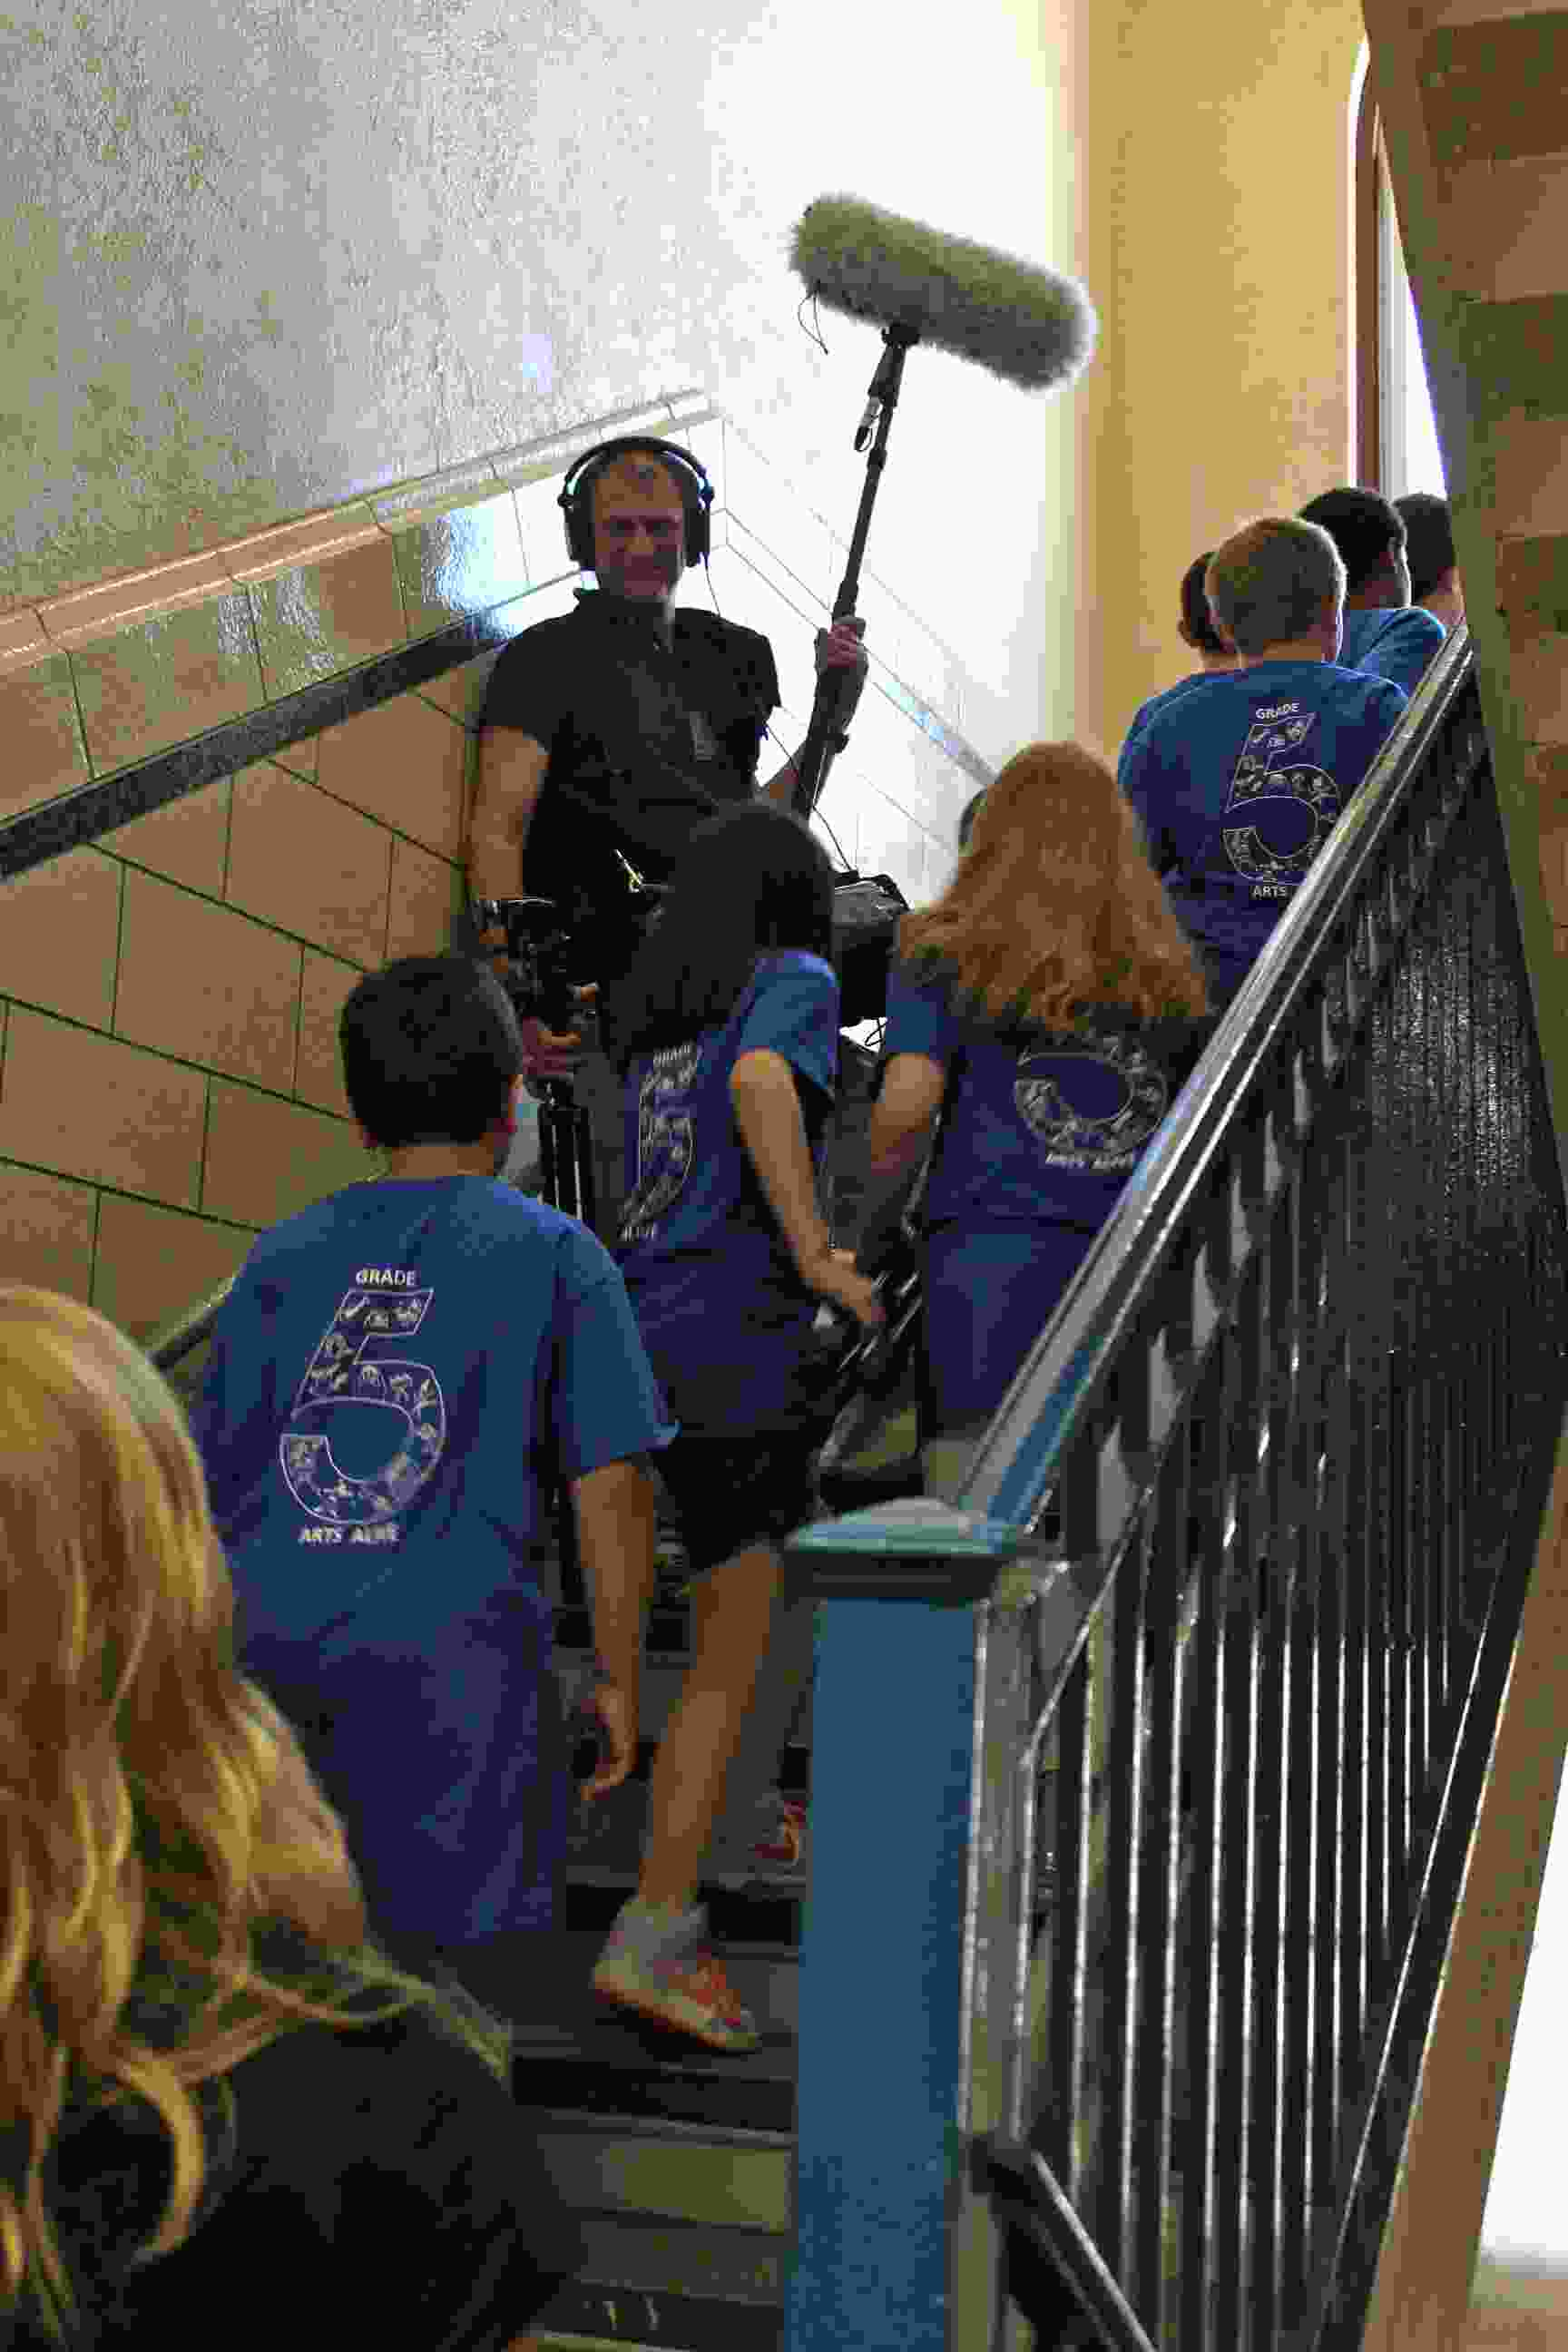 Haldane Fifth Grade Arts Day Boom Mike in Stairwell IMG_9869